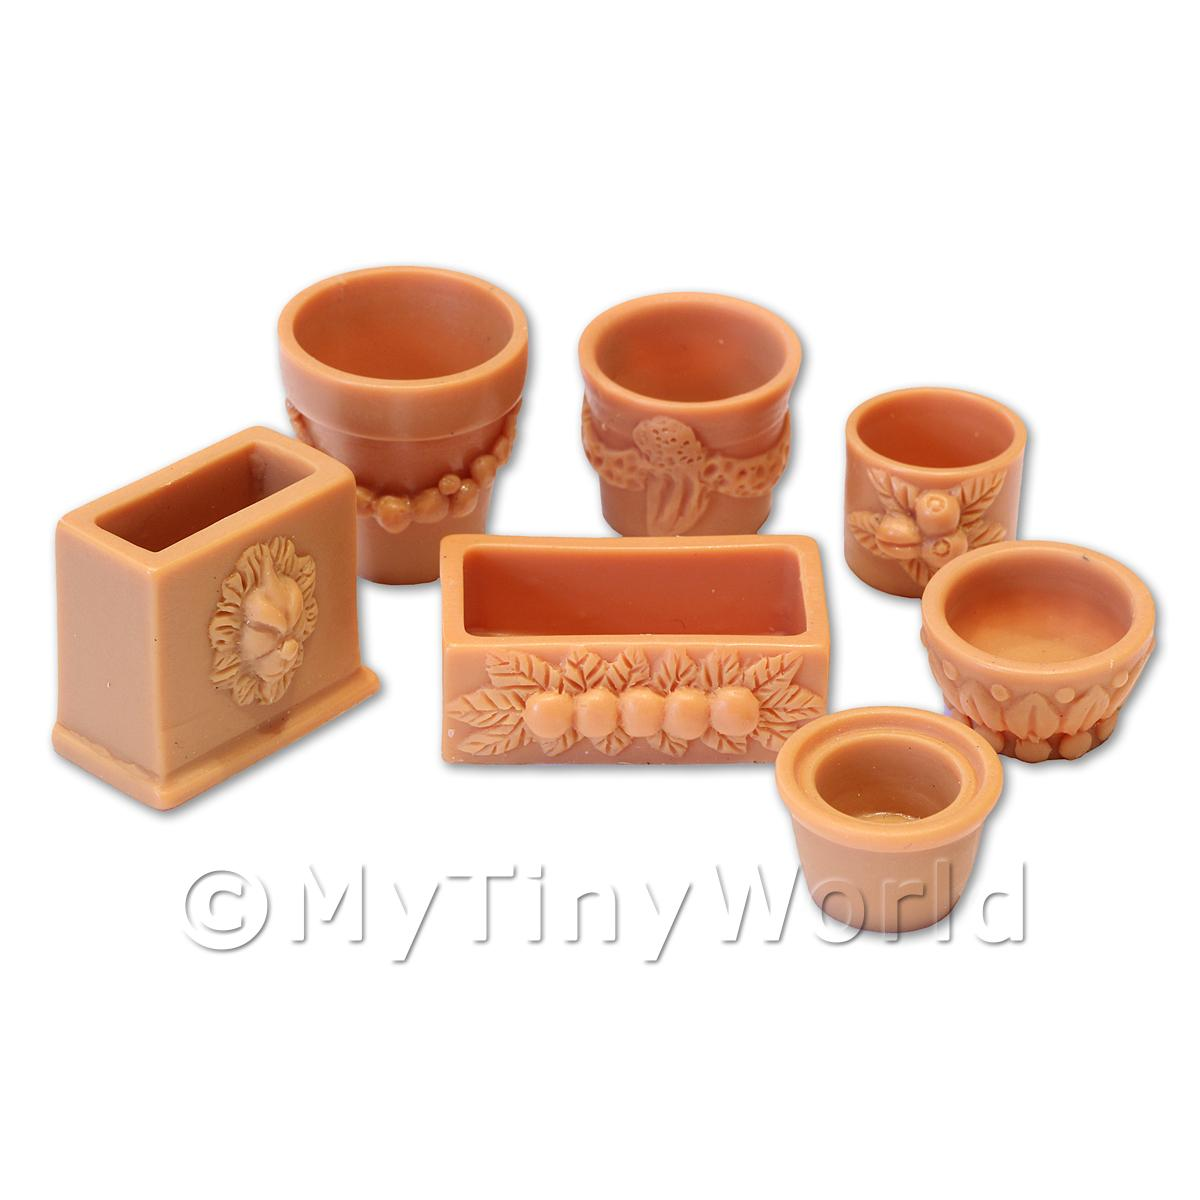 Dolls House Miniature  | Set of 7 Dolls House Miniature Terracotta Style Resin Flower Pots